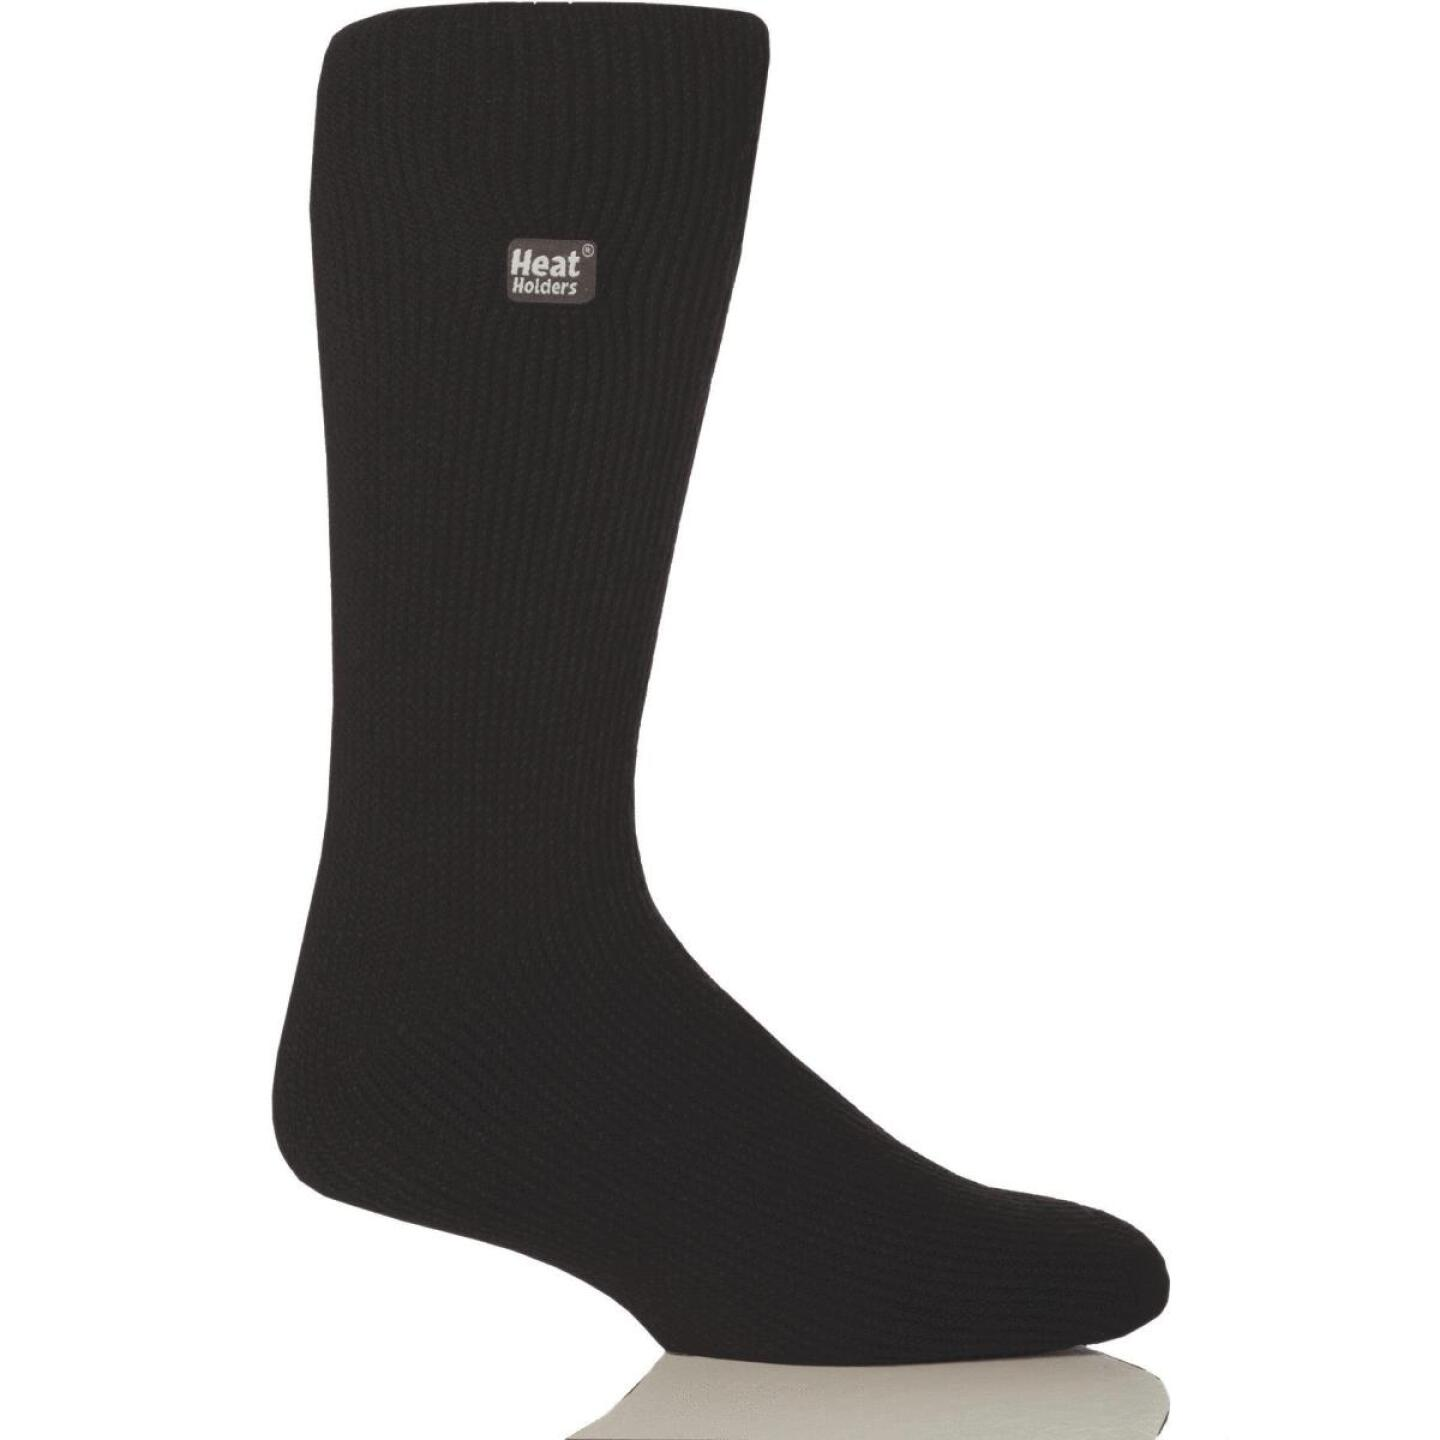 Heat Holders Men's 7 to 12 Black Thermal Sock Image 1